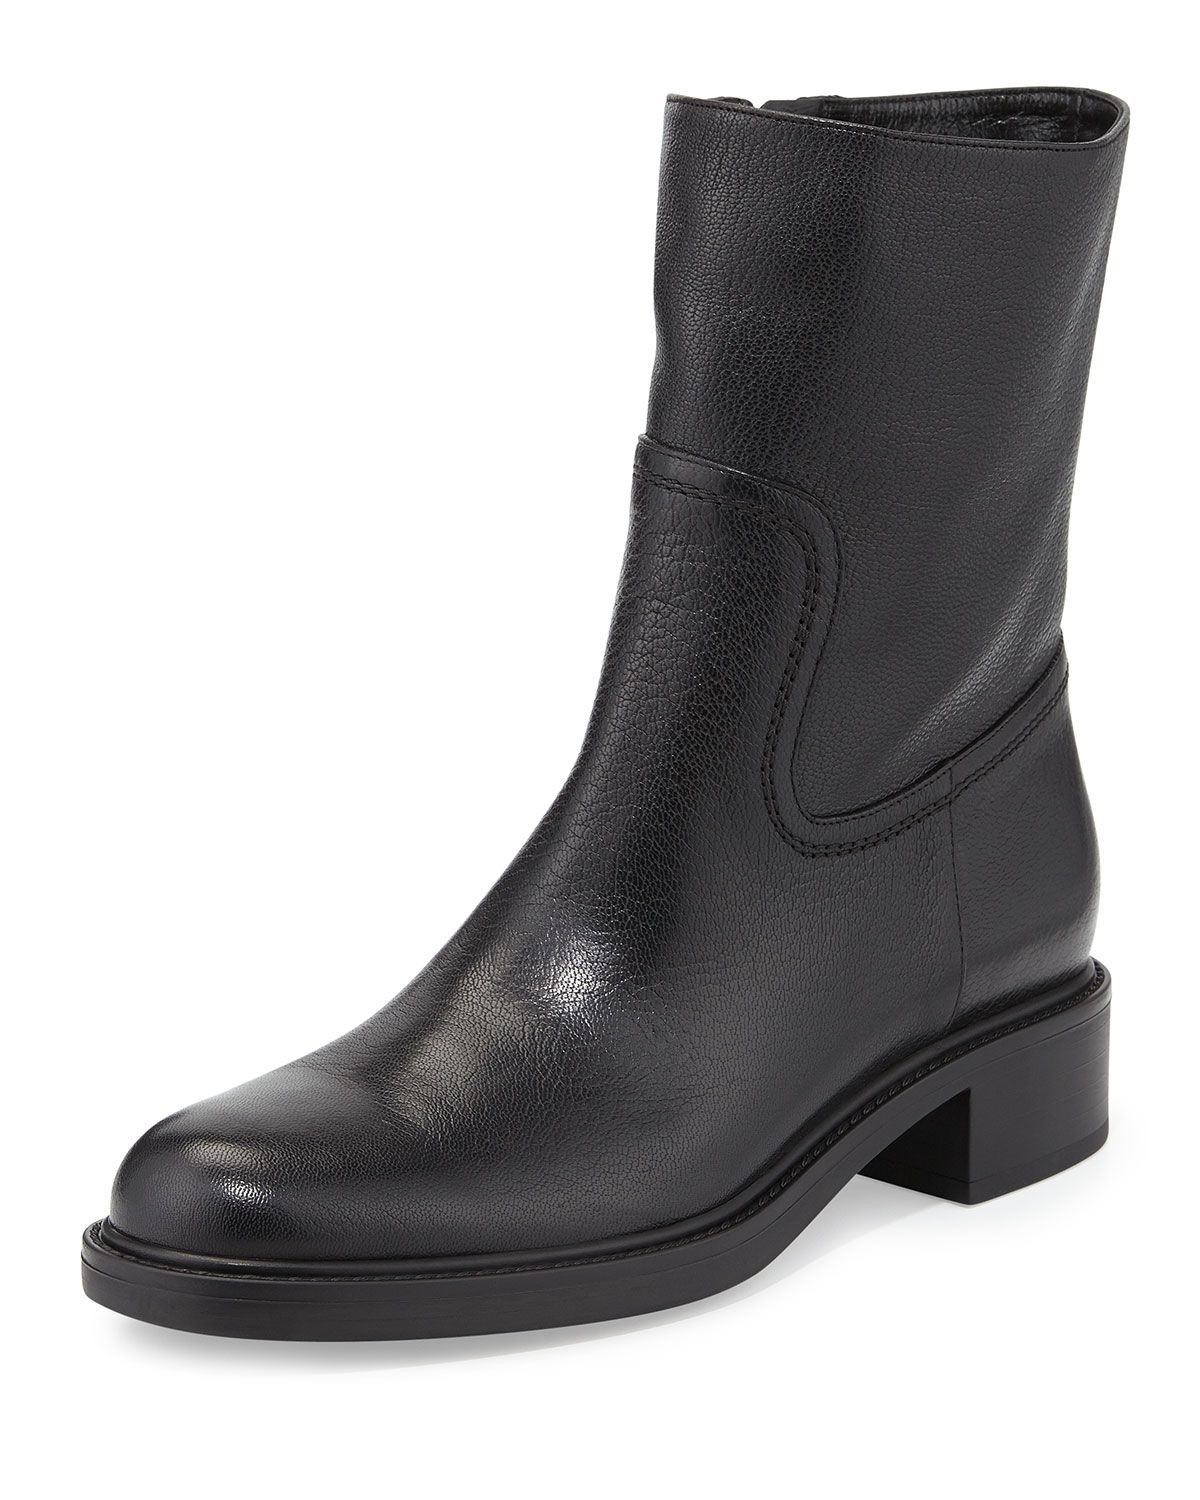 1a7327ca6 Maud Leather Ankle Boot Black | *Apparel & Accessories > Shoes ...